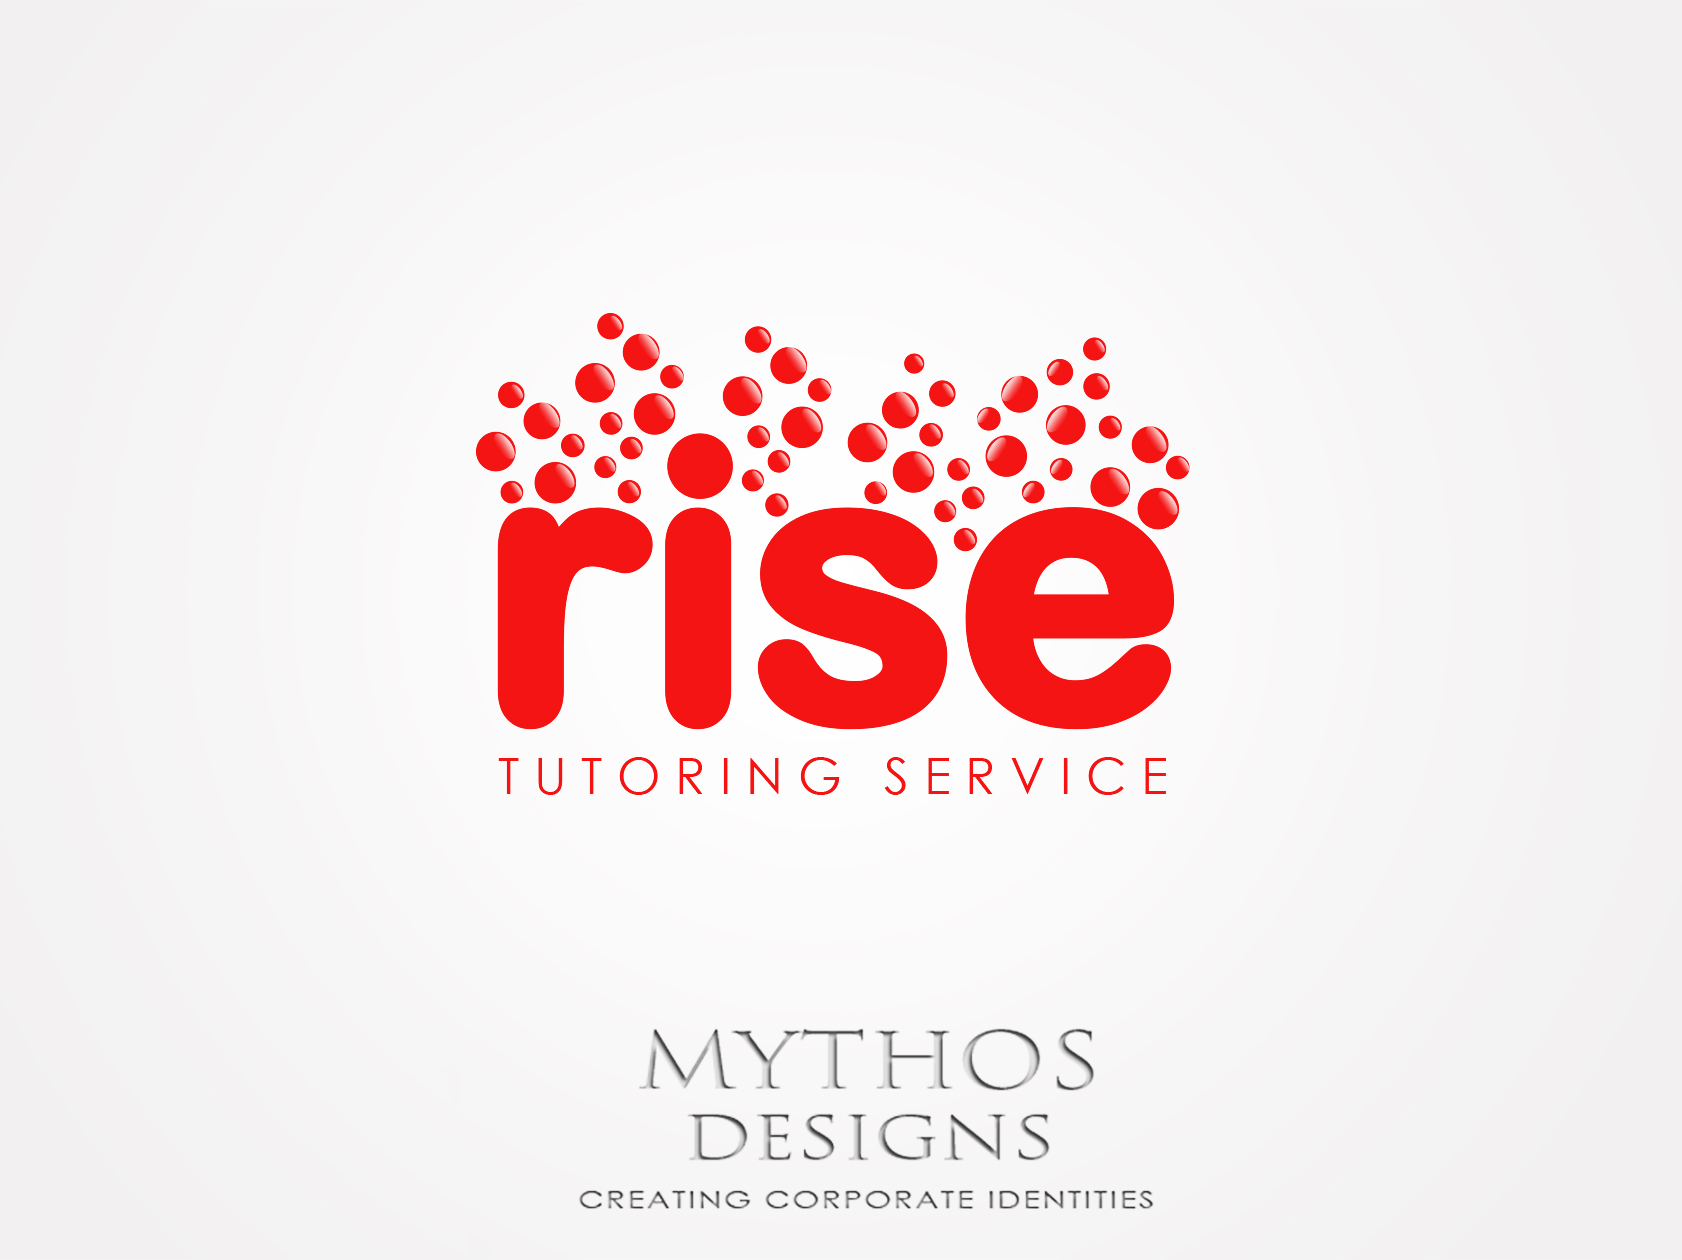 Logo Design by Mythos Designs - Entry No. 242 in the Logo Design Contest Imaginative Logo Design for Rise Tutoring Service.